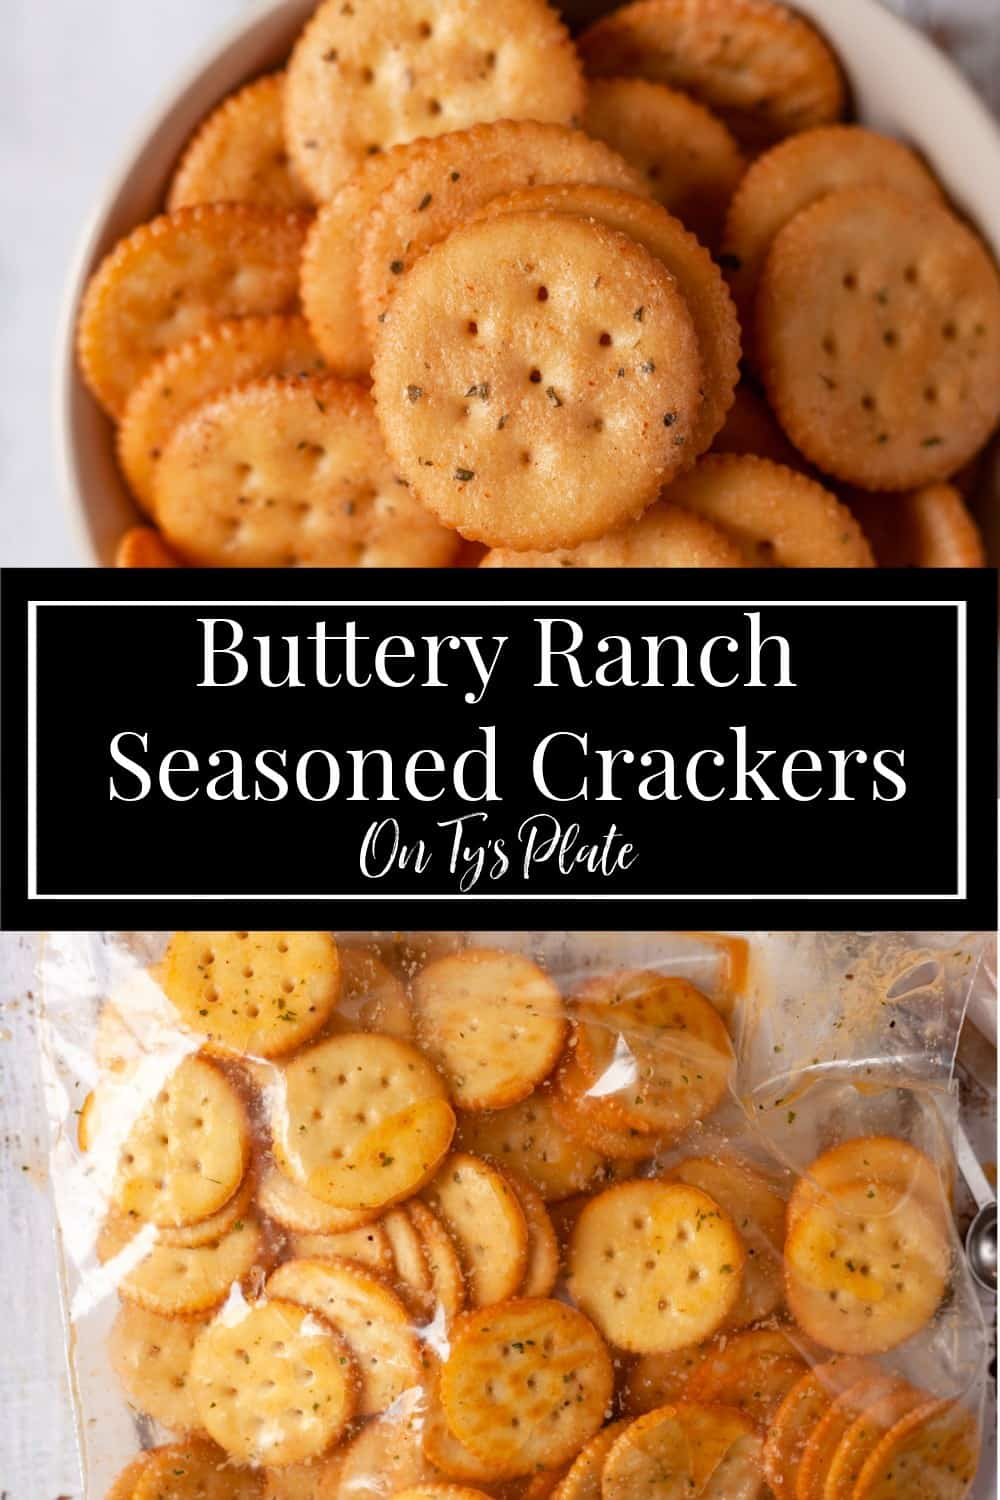 Spicy Buttery Ranch Seasoned Crackers